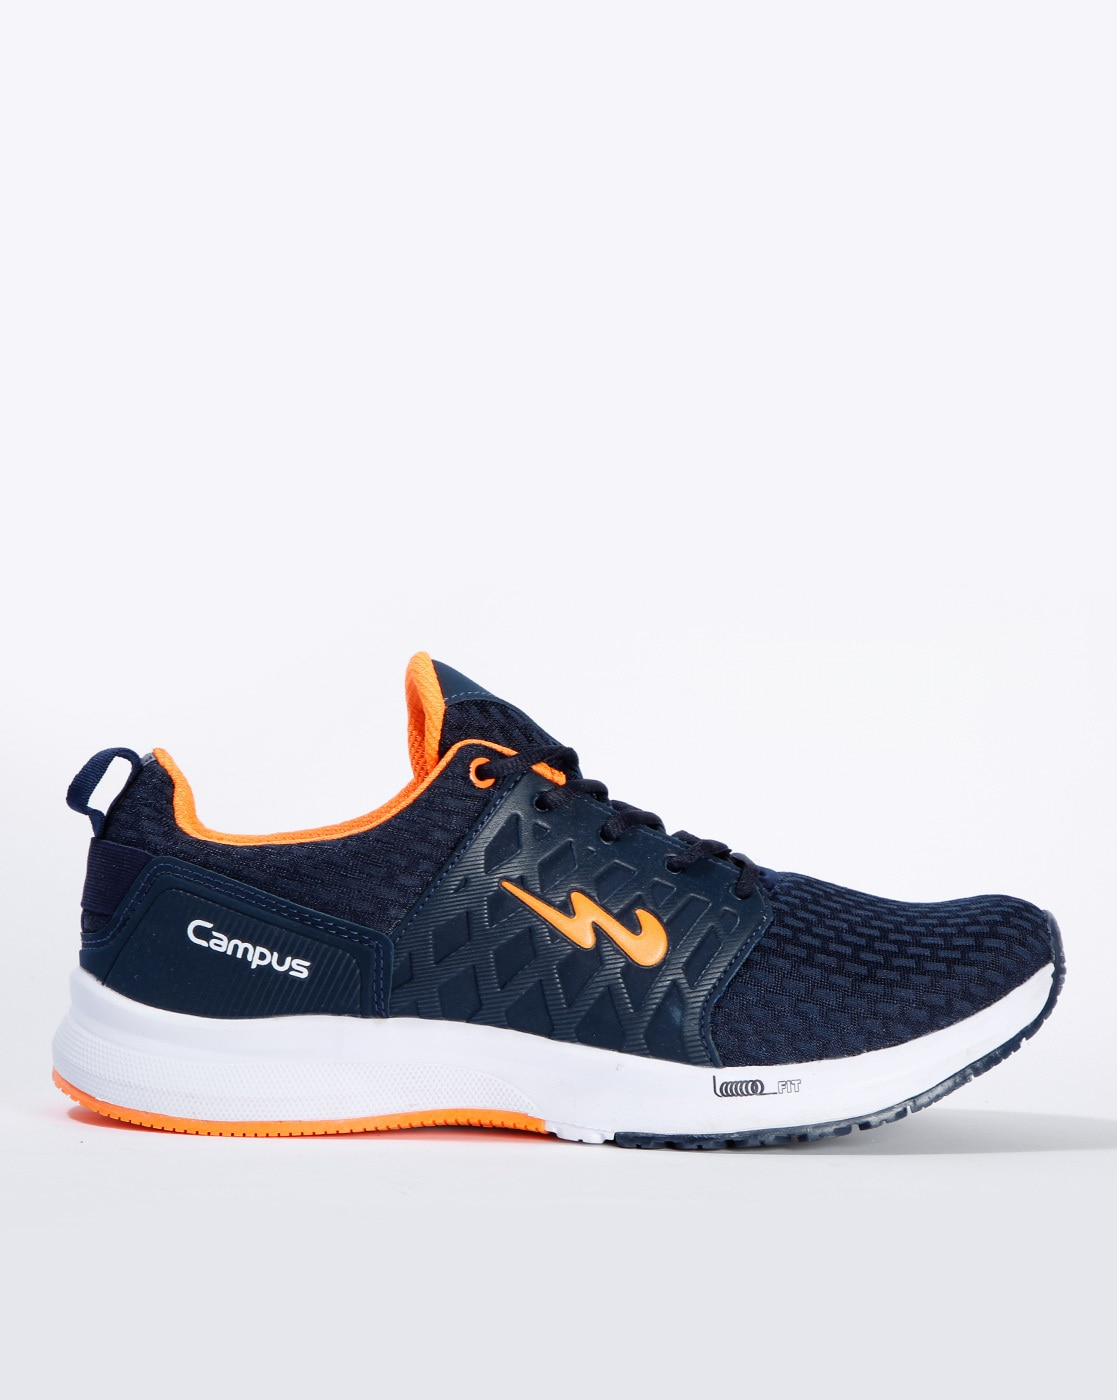 Buy Blue Sports Shoes for Men by Campus